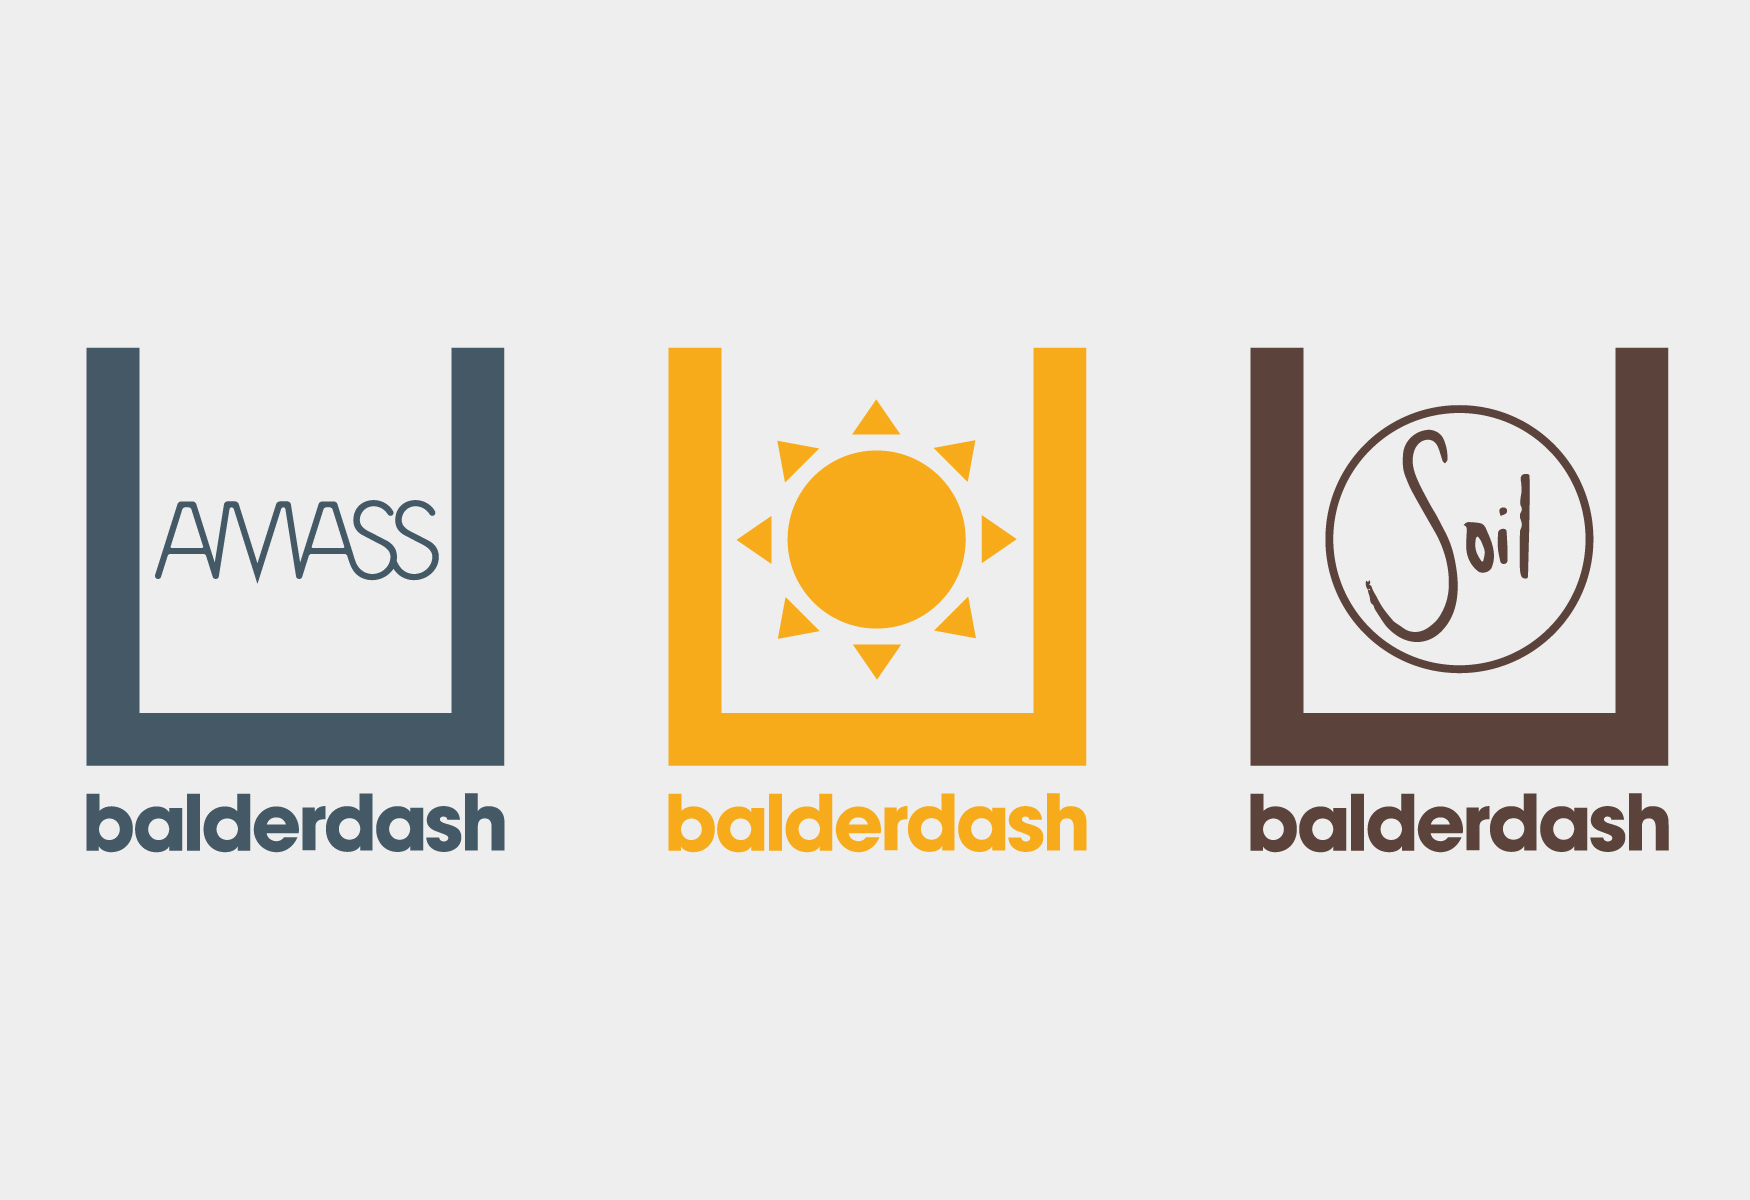 Balderdash – Cocktail Bar Collab Logos. Visual Identity by HEAVY™ – www.heavy.tm